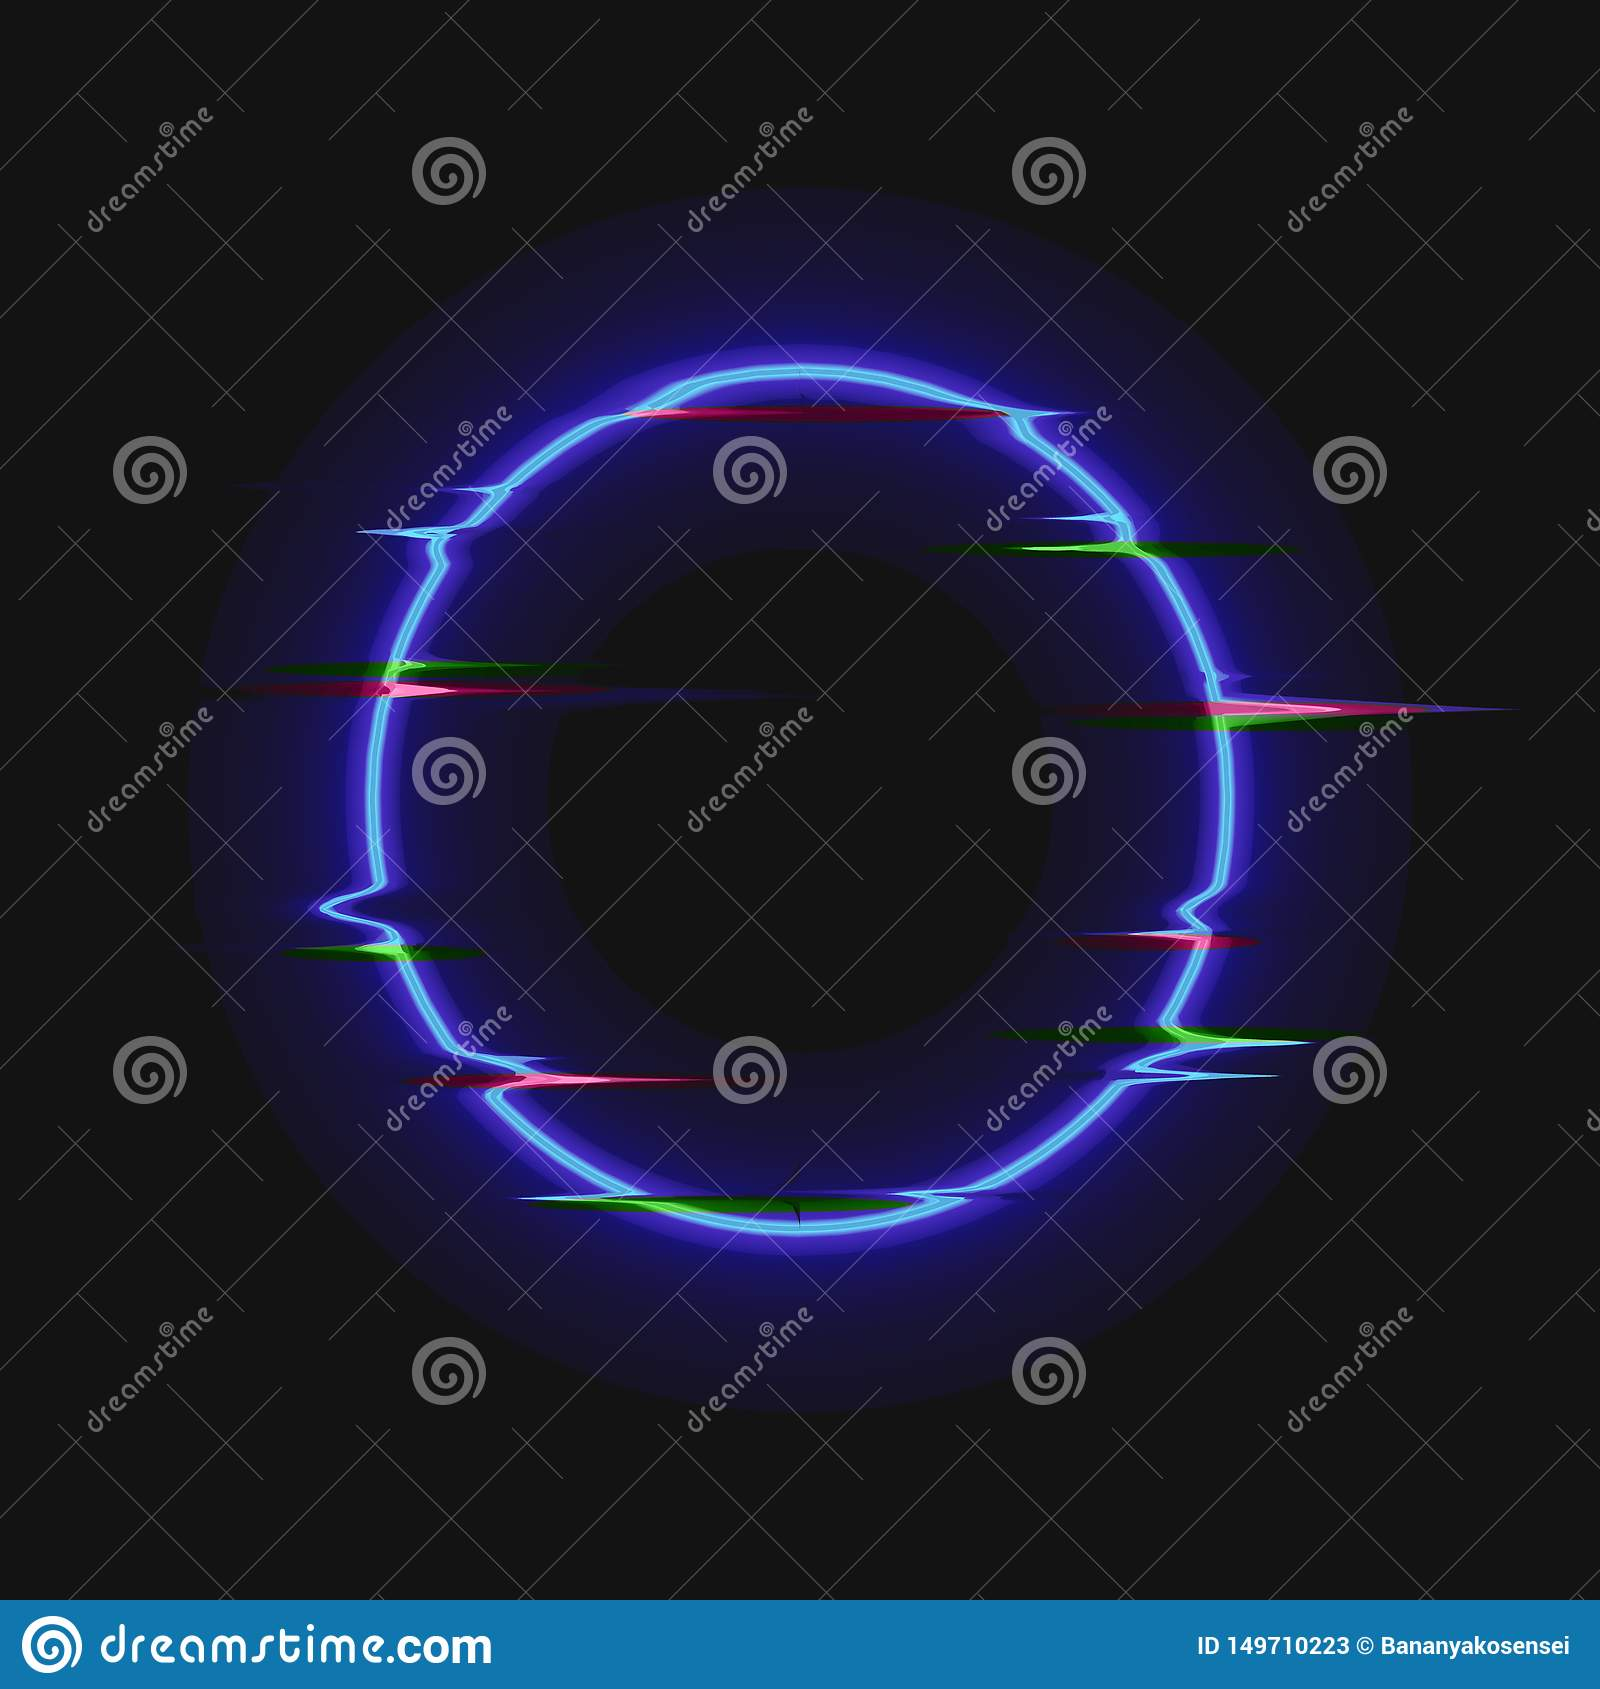 Vector Neon Blue Circle with Glitch Effect, Colorful Blank Frame Isolated, Shining Illustration Template.